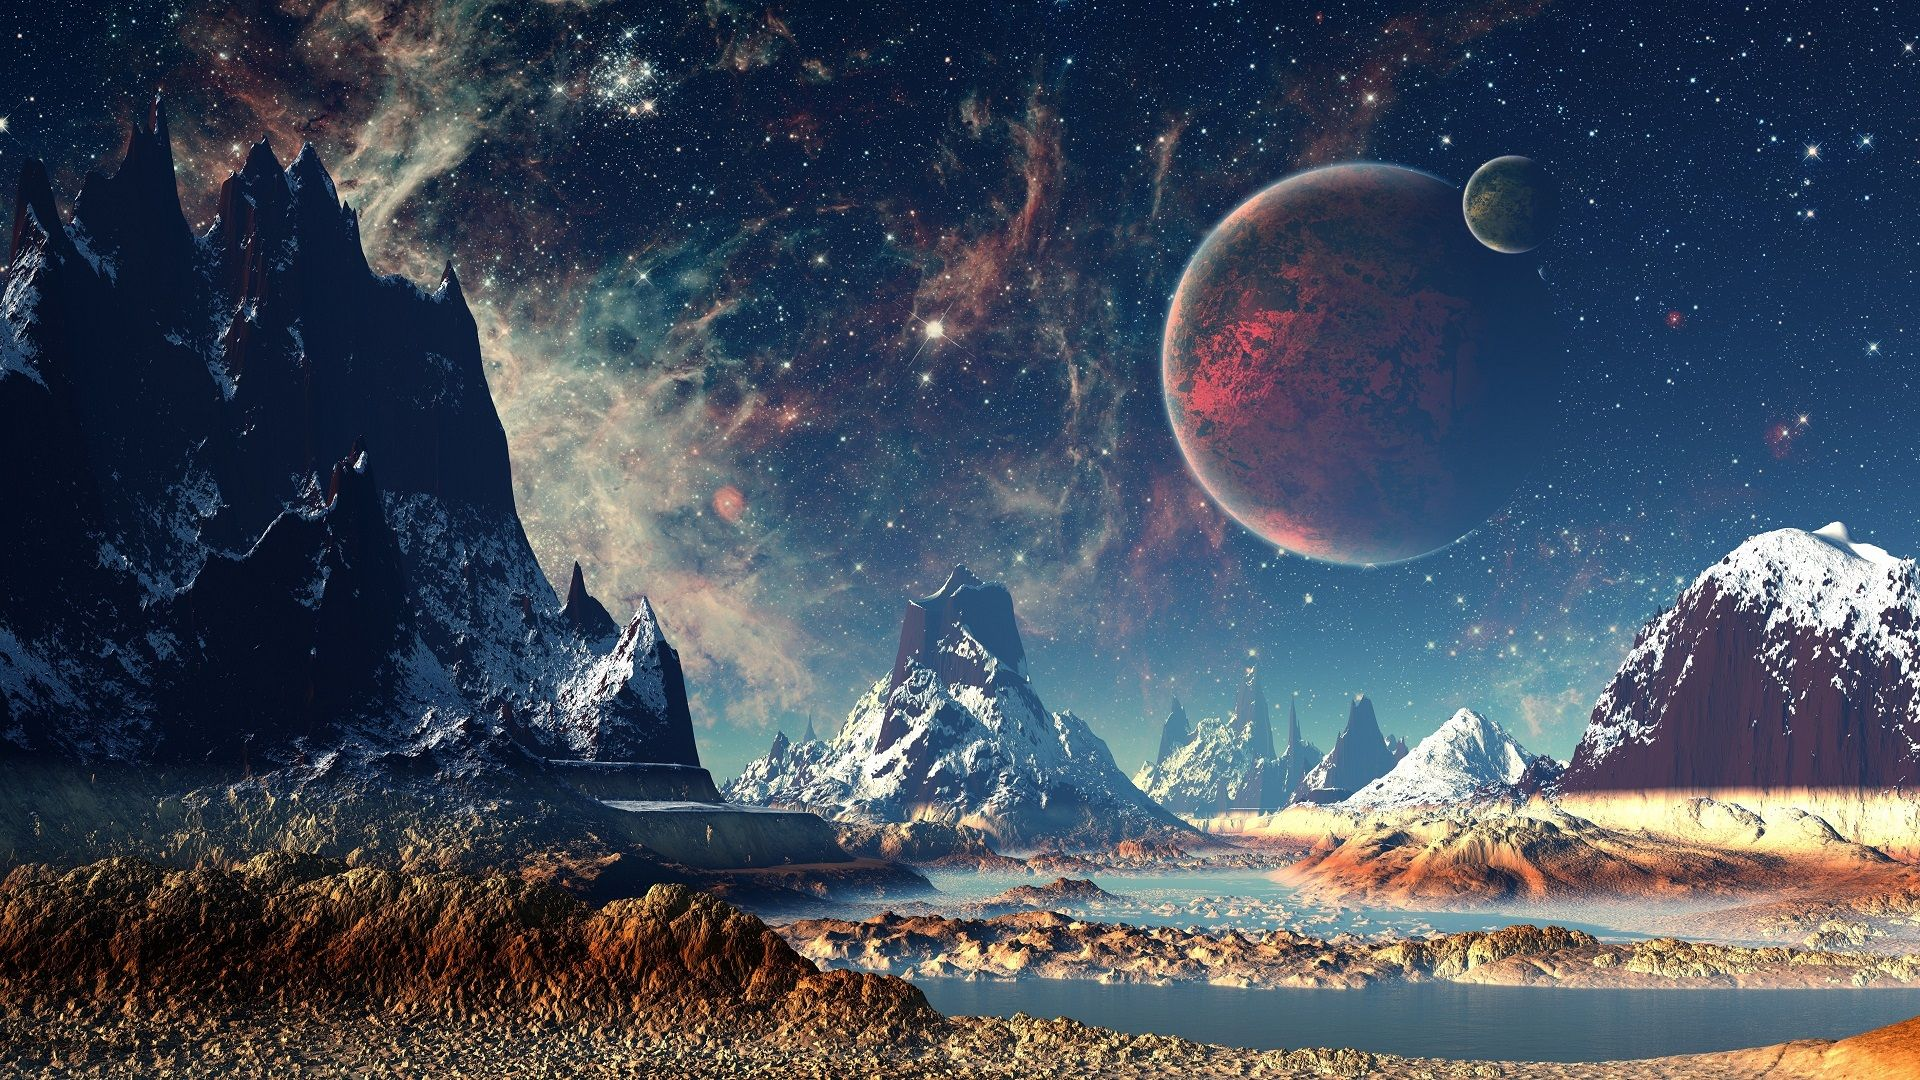 High Resolution Space Image wallpaper pc